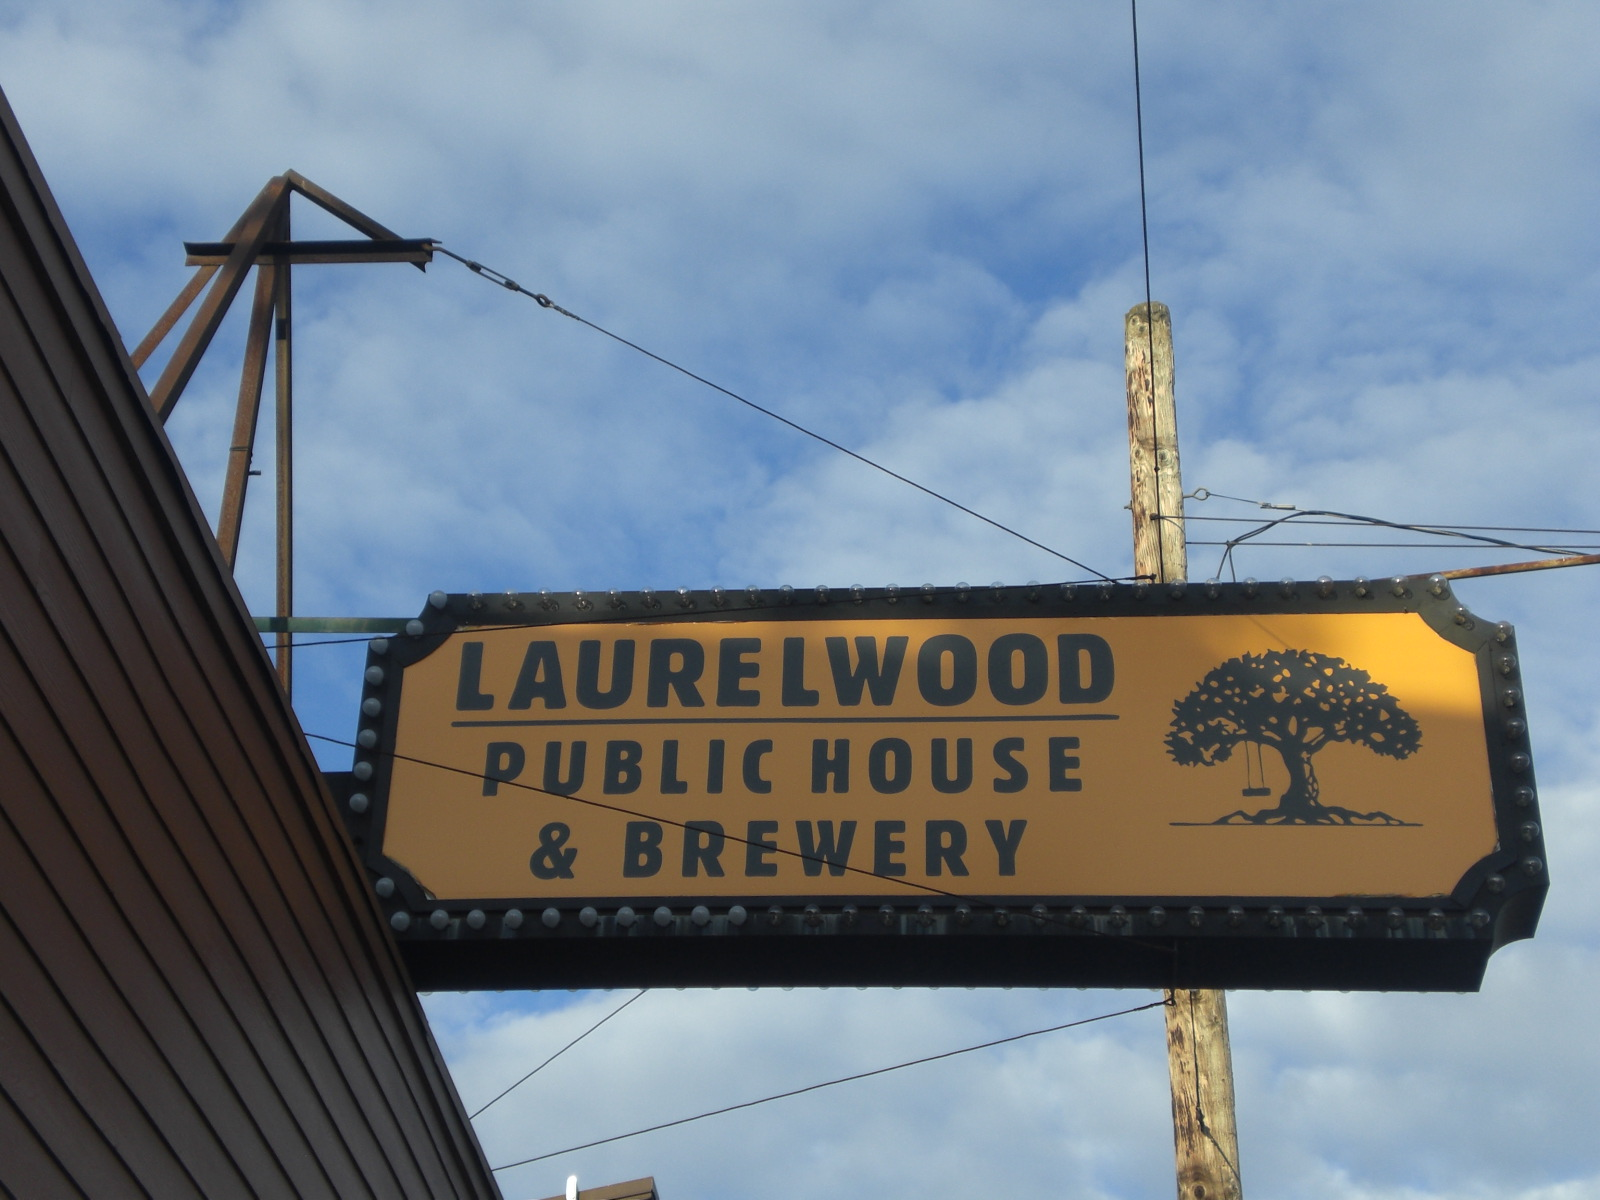 Laurelwood public house brewery 28 images laurelwood for Laurelwood